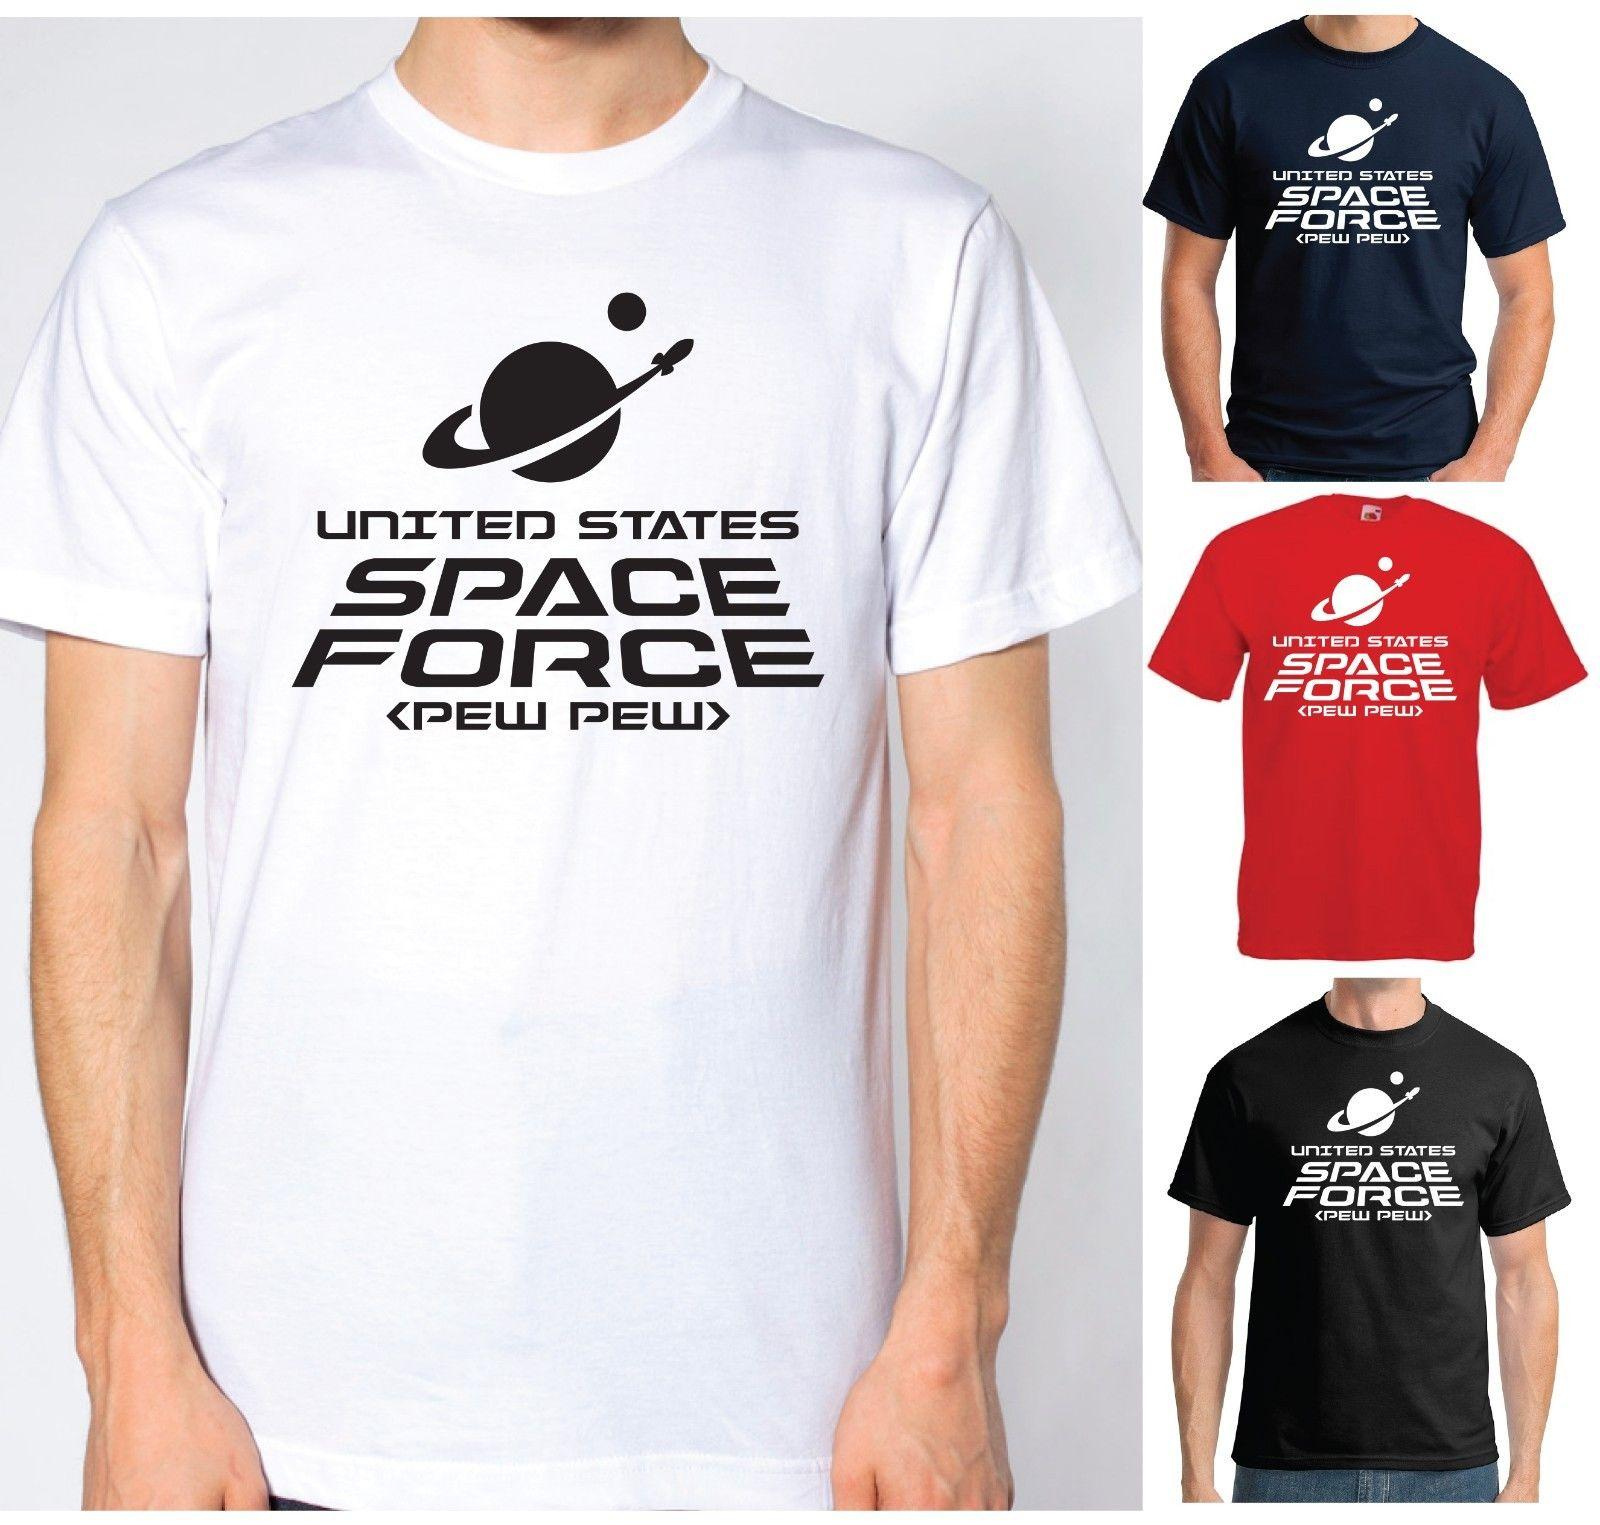 03d7077a9d United States Space Force T Shirt Pew Pew Funny Sci Fi USA Trump Pence  Unisex Funny Gift Casual Tee It T Shirts Humor T Shirts From Lukehappy12,  ...